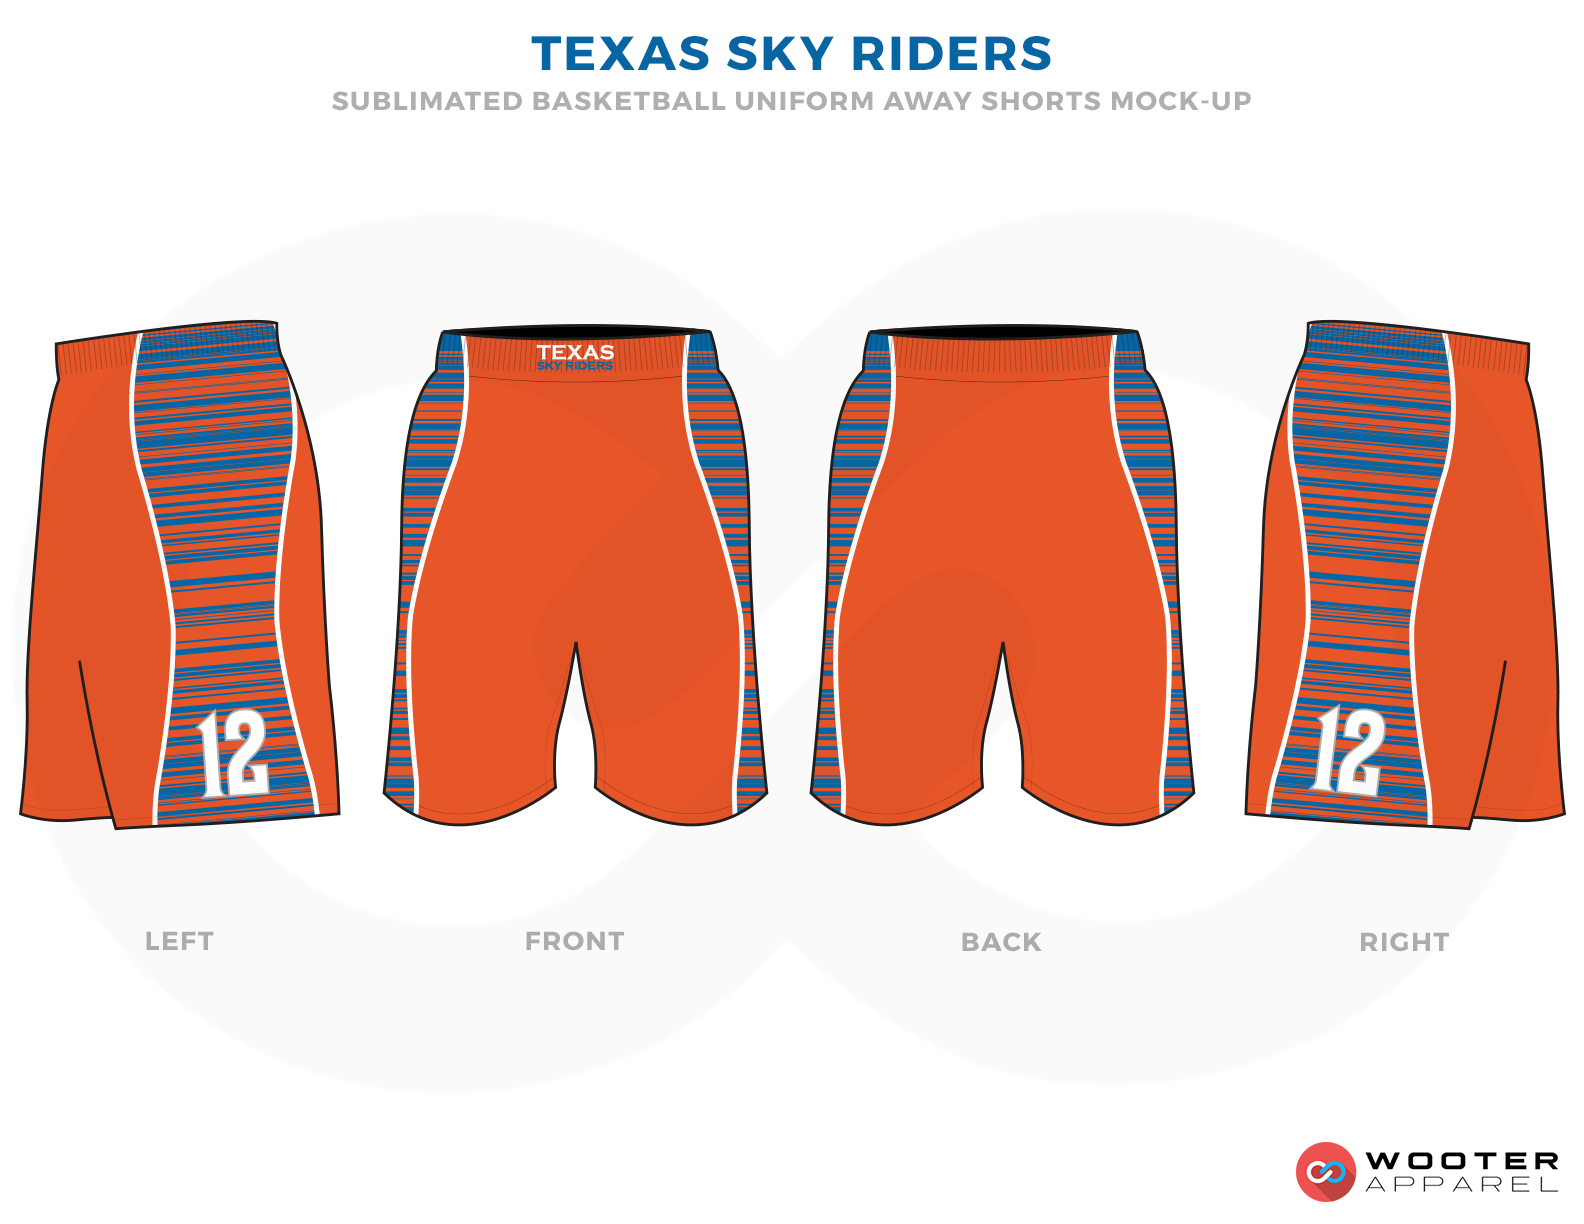 TEXAS SKY RIDERS Orange  Blue and White Basketball Uniforms, Shorts